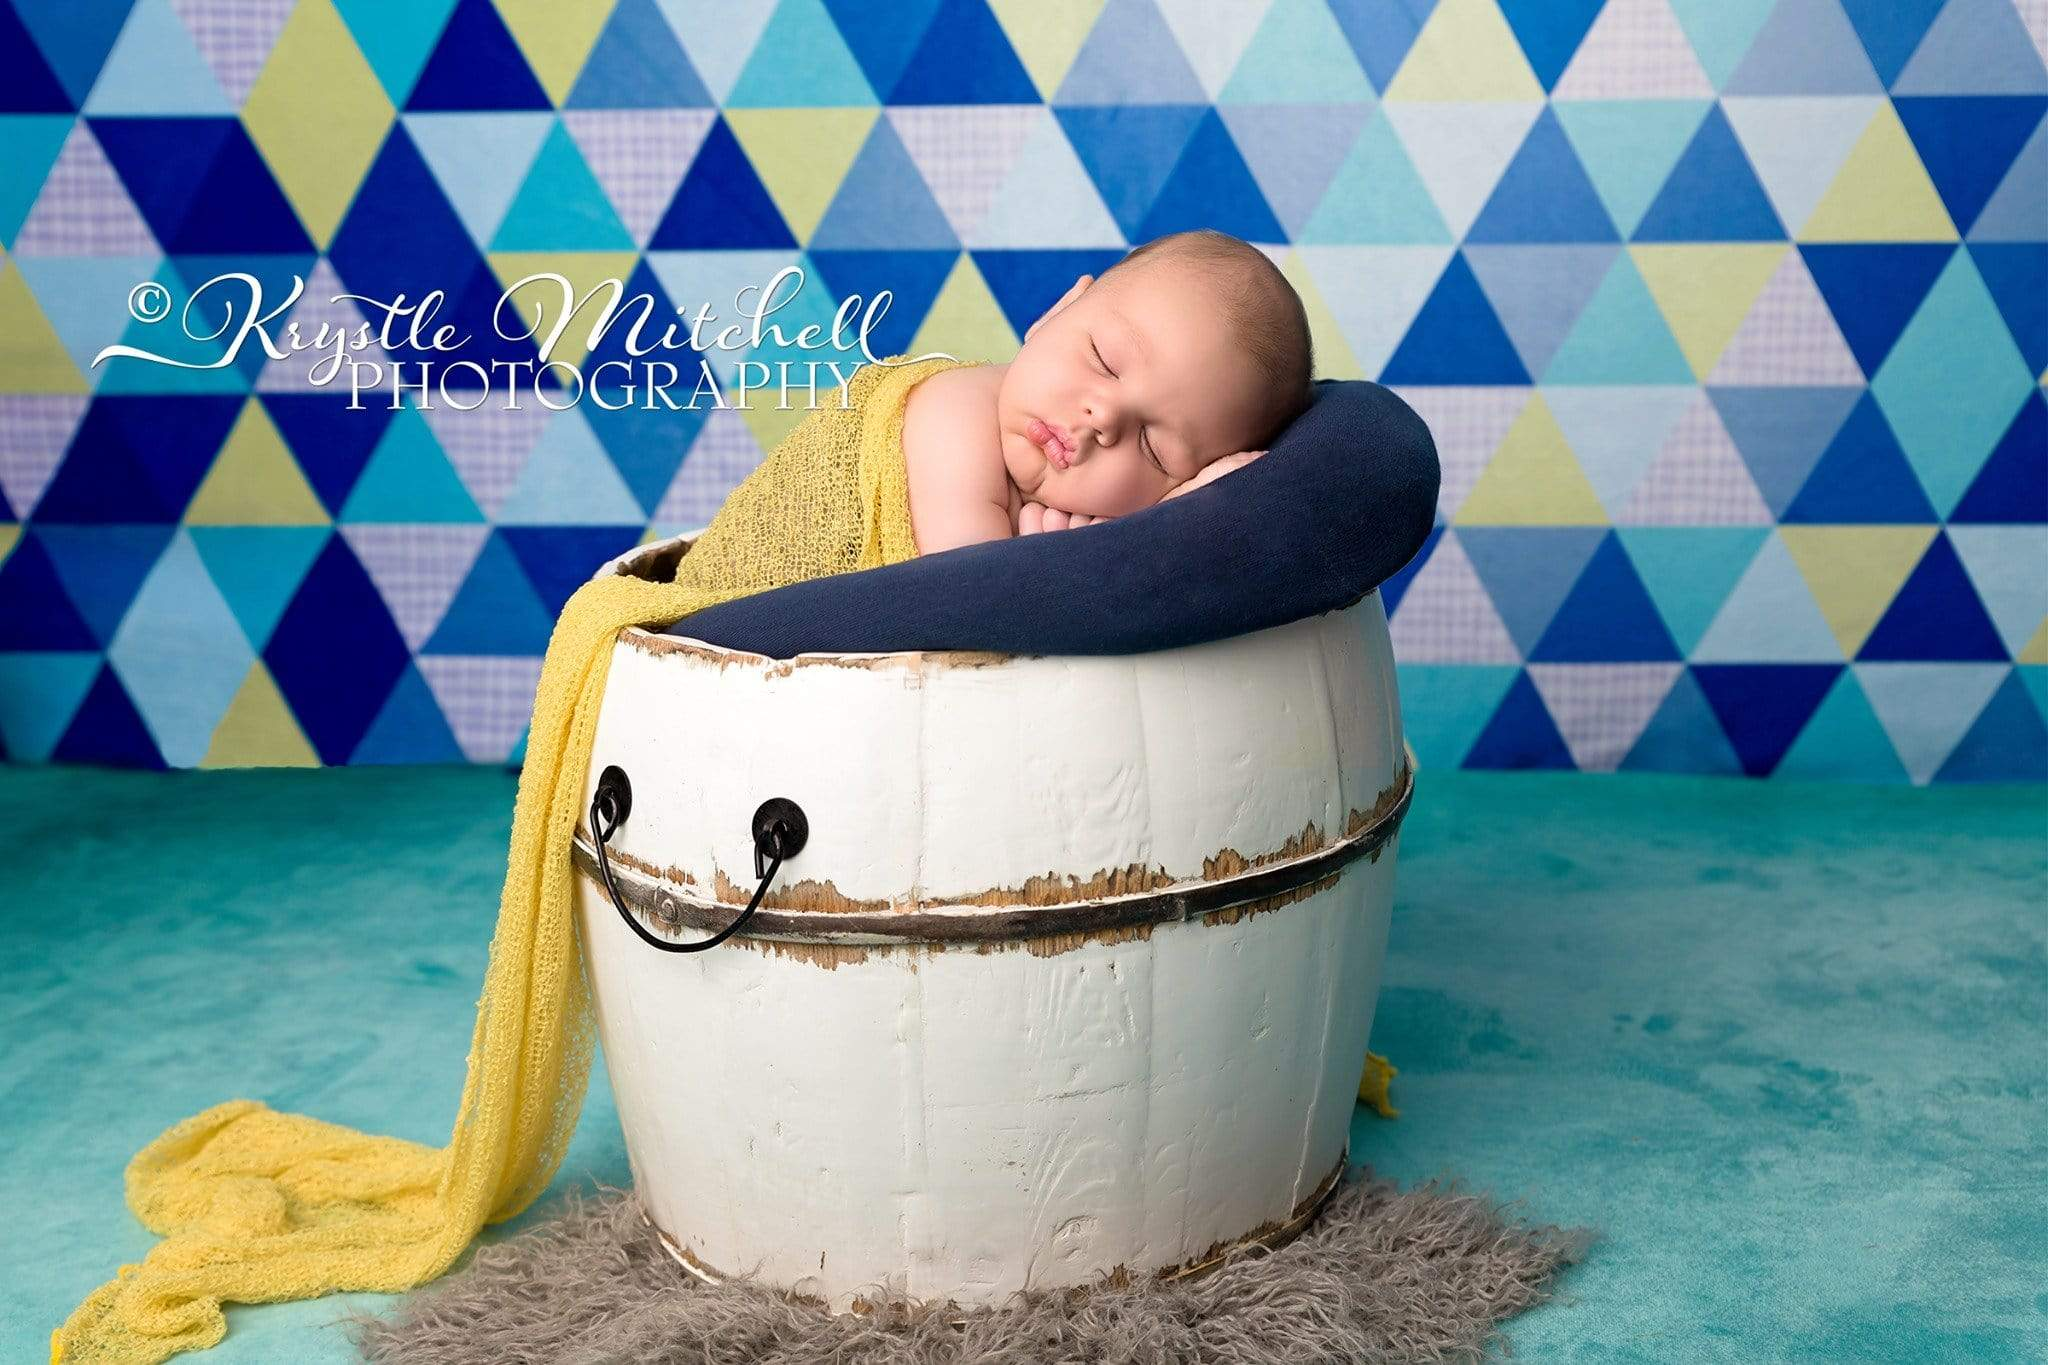 Load image into Gallery viewer, Katebackdrop£ºKate Blue Triangle Seamless Pattern Backdrop Designed By Krystle Mitchell Photography